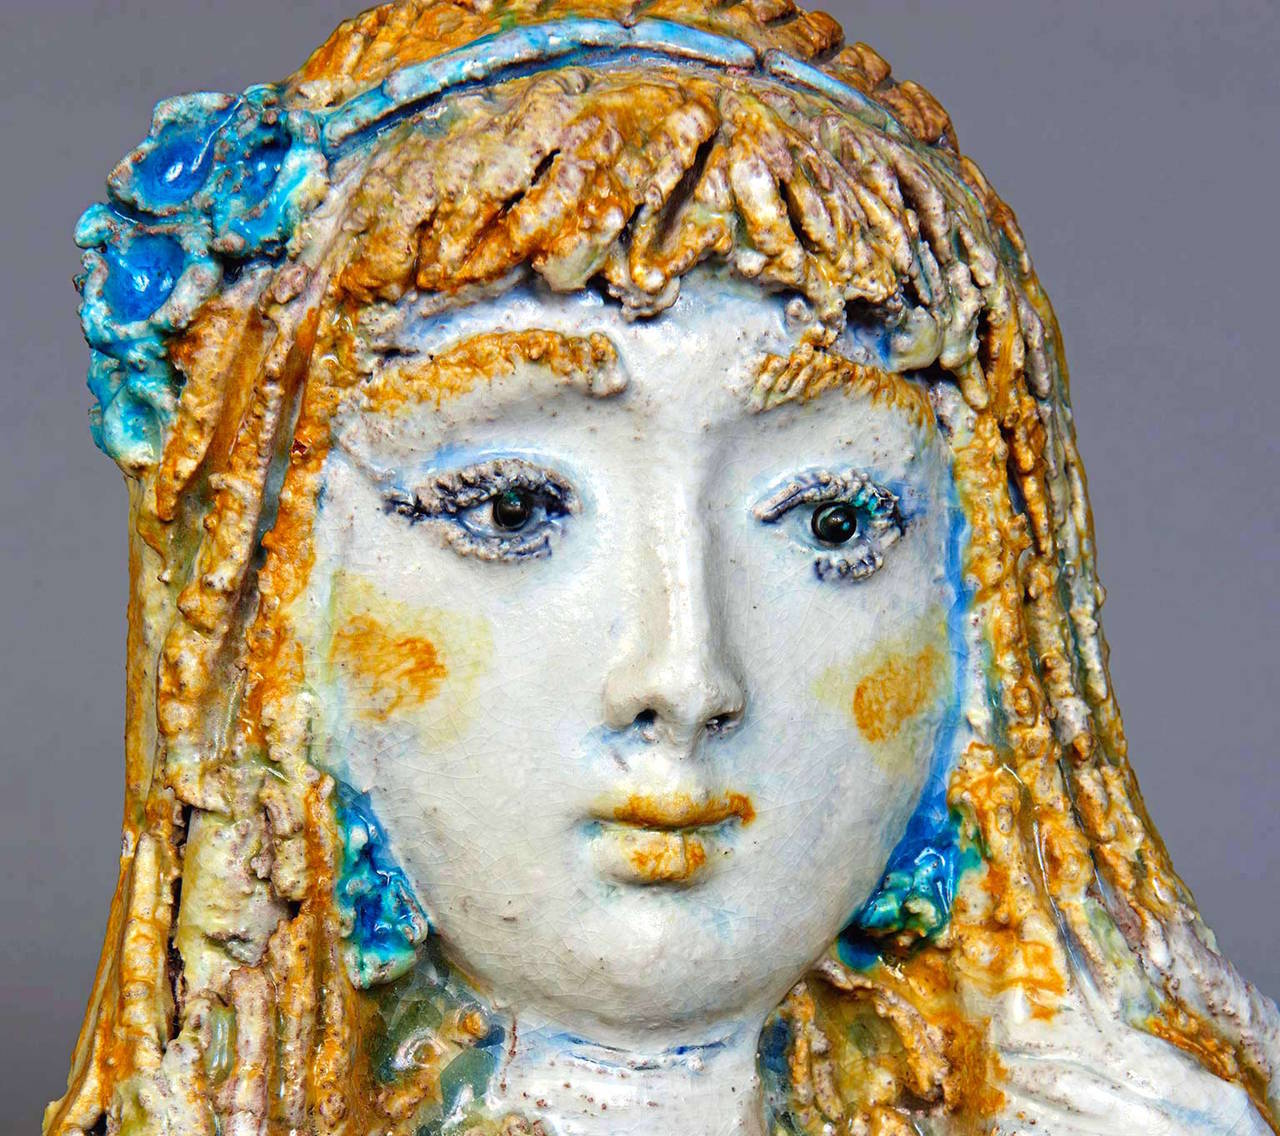 Ceramic Sculpture by Ugo Lucerni In Excellent Condition For Sale In Los Angeles, CA